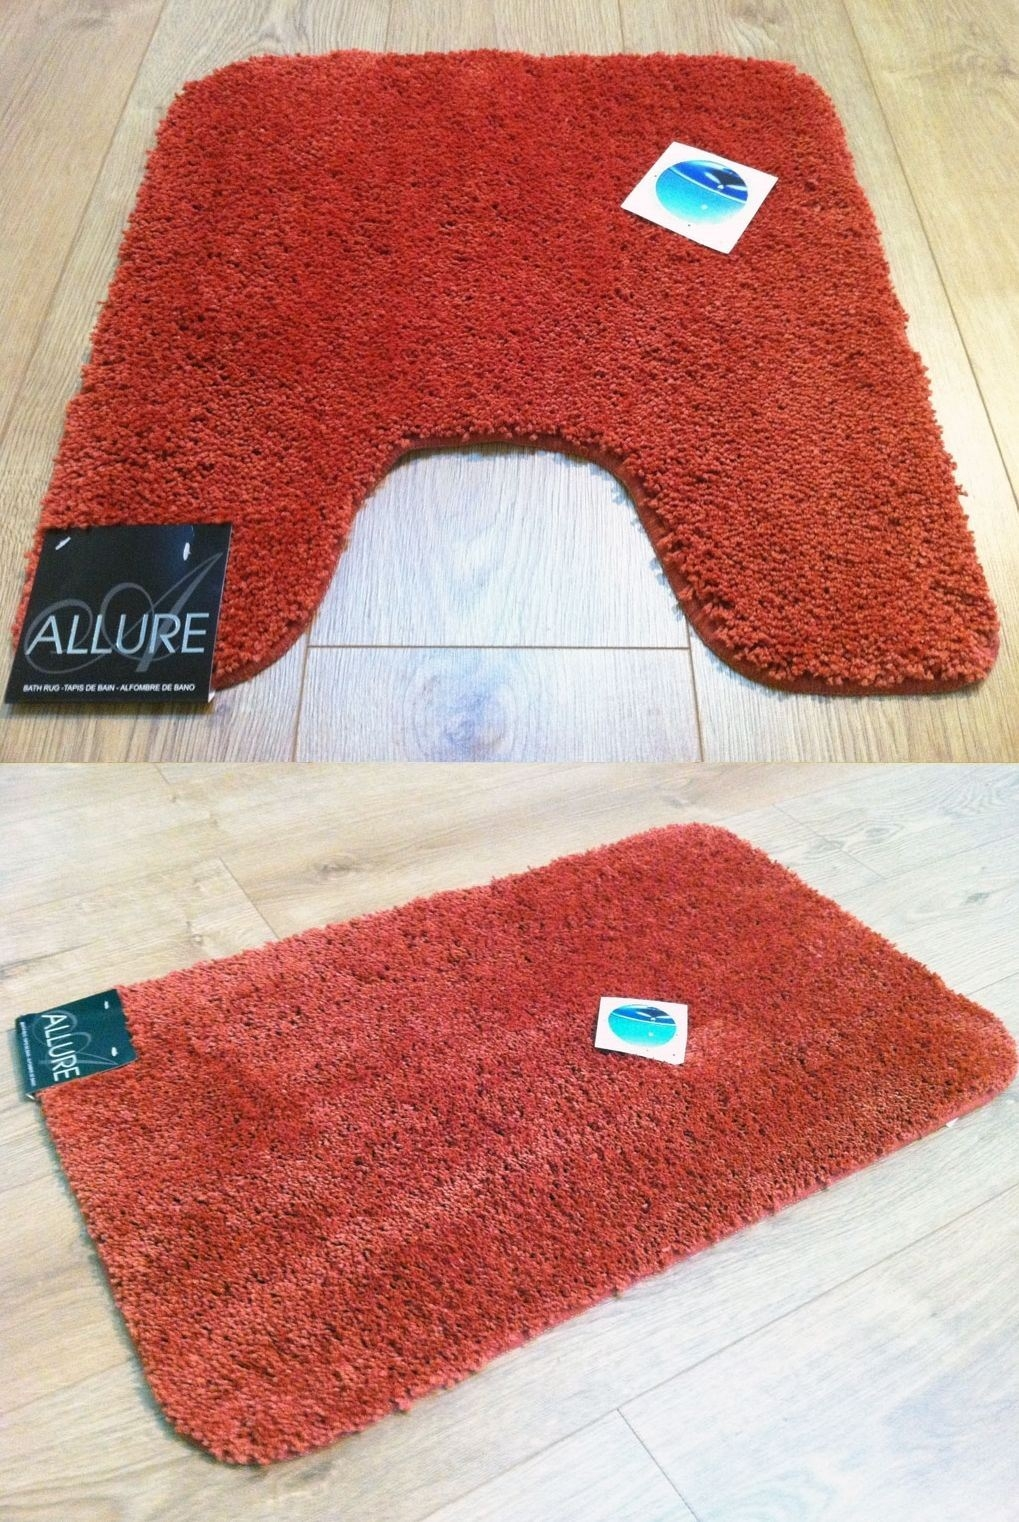 Rubber Backed Non Slip Bath Mats